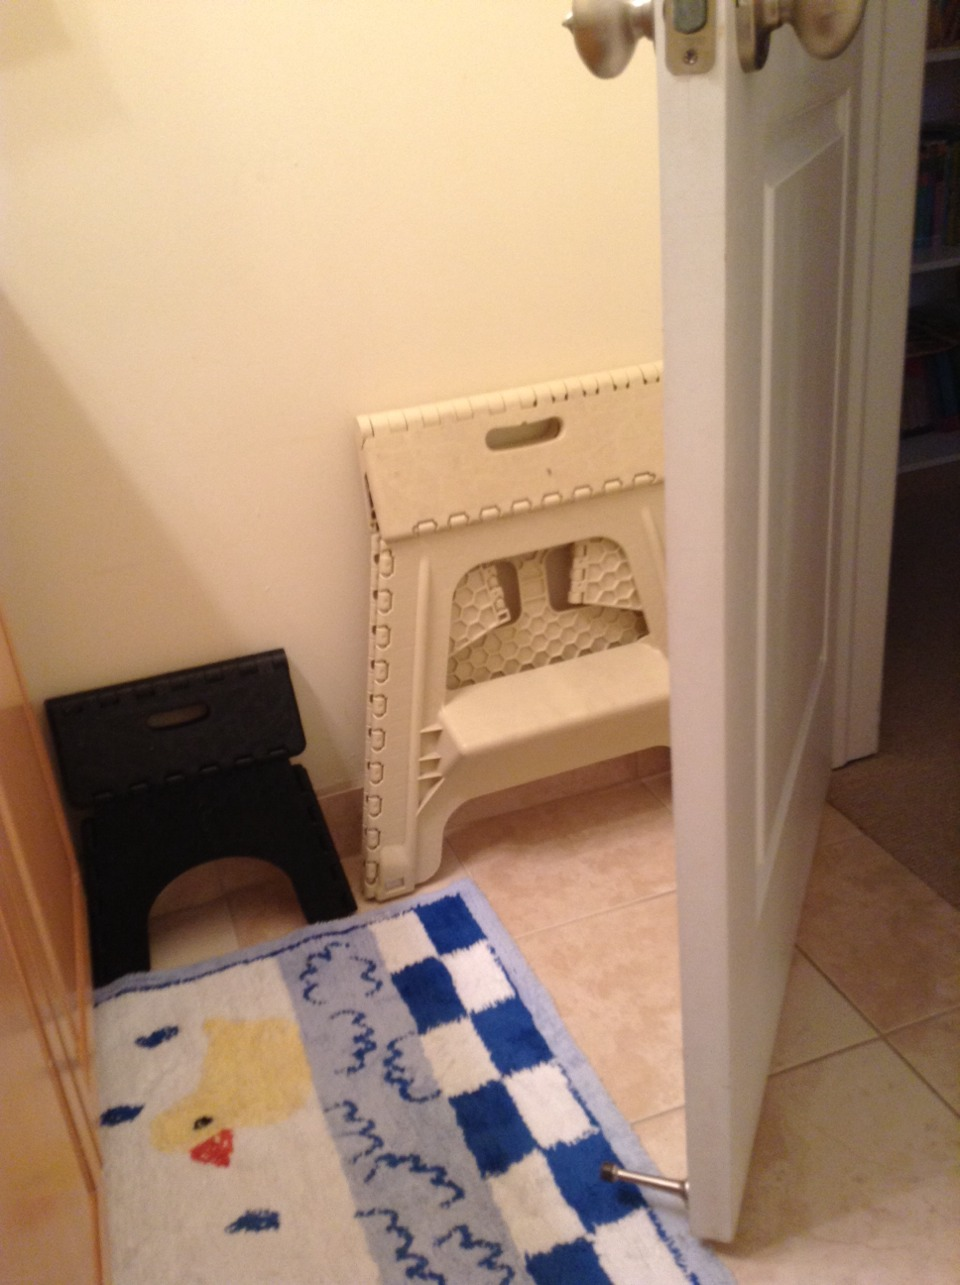 I keep my two stools behind my door to save space somewhere else in my room and/or house.